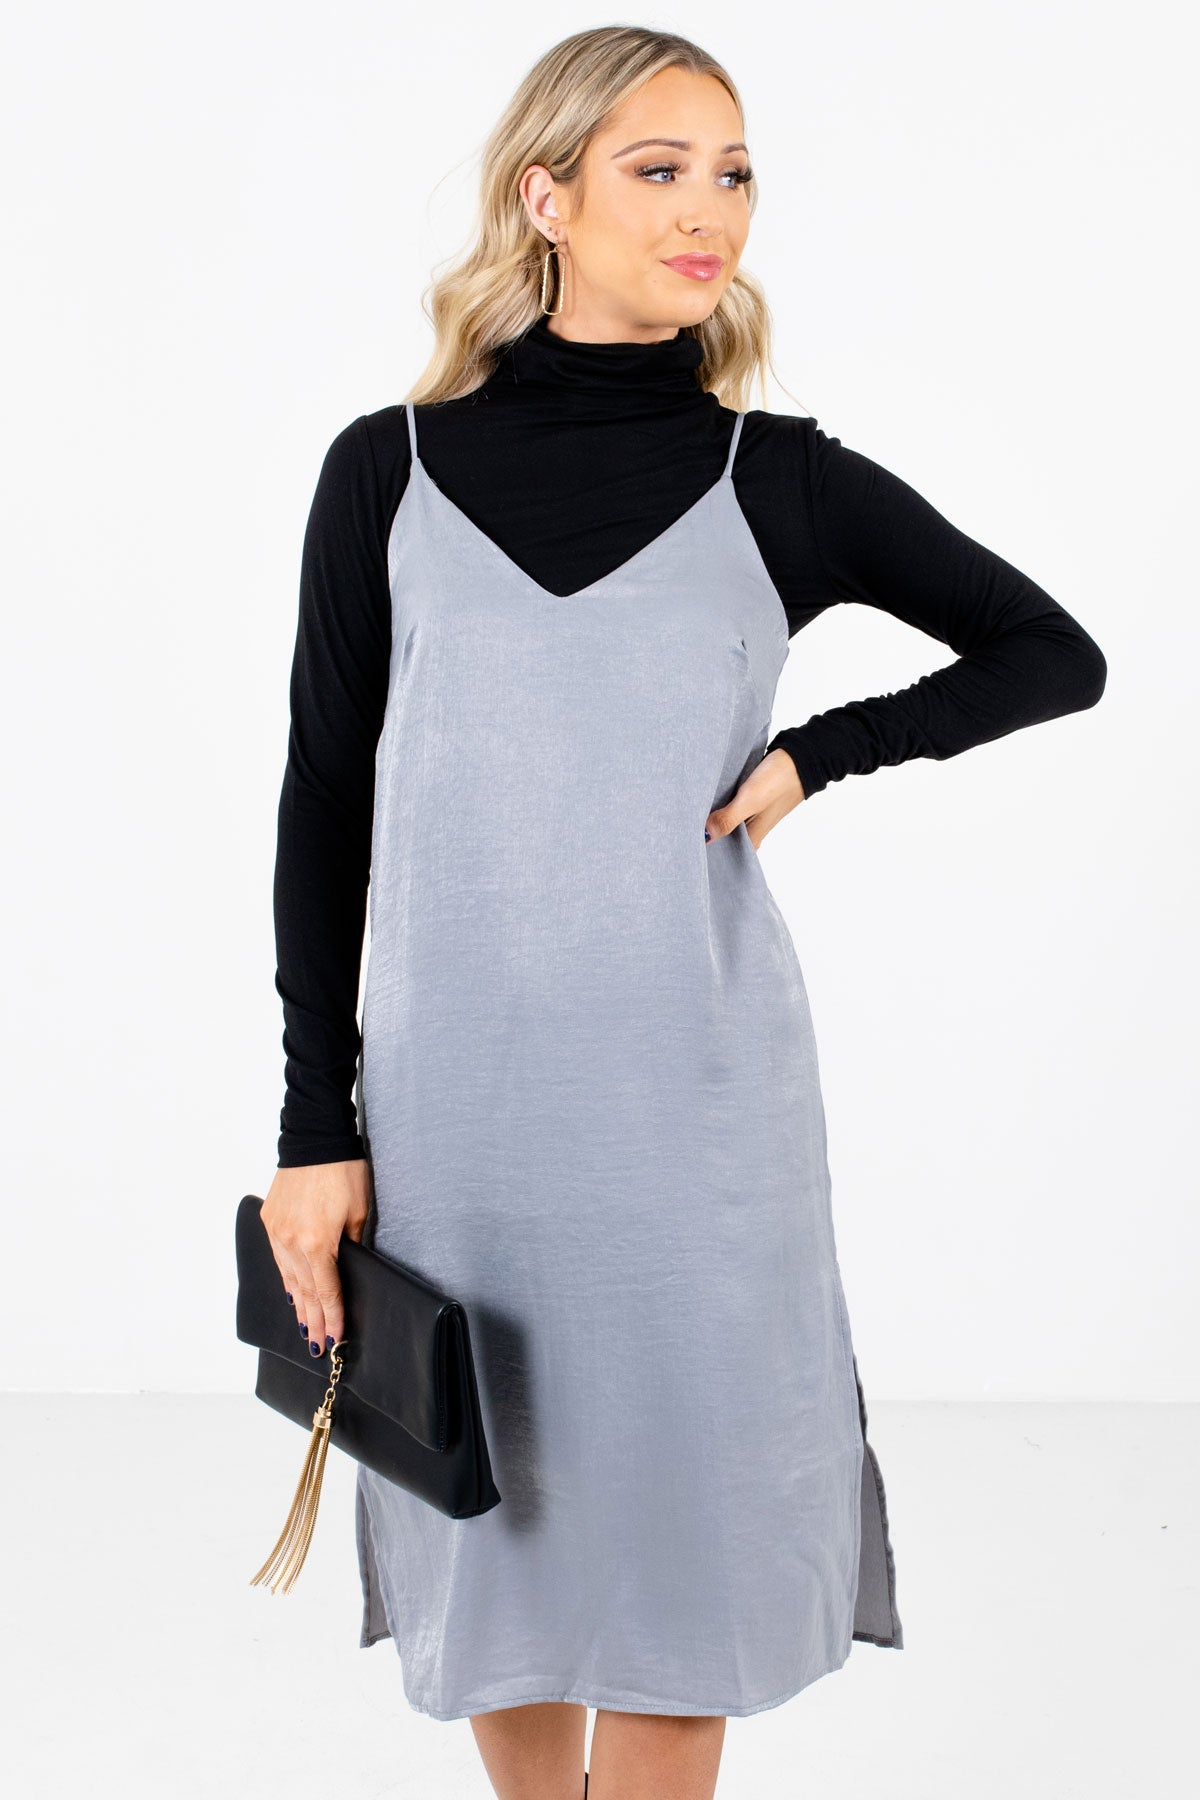 Slate Gray Affordable Online Boutique Clothing for Women